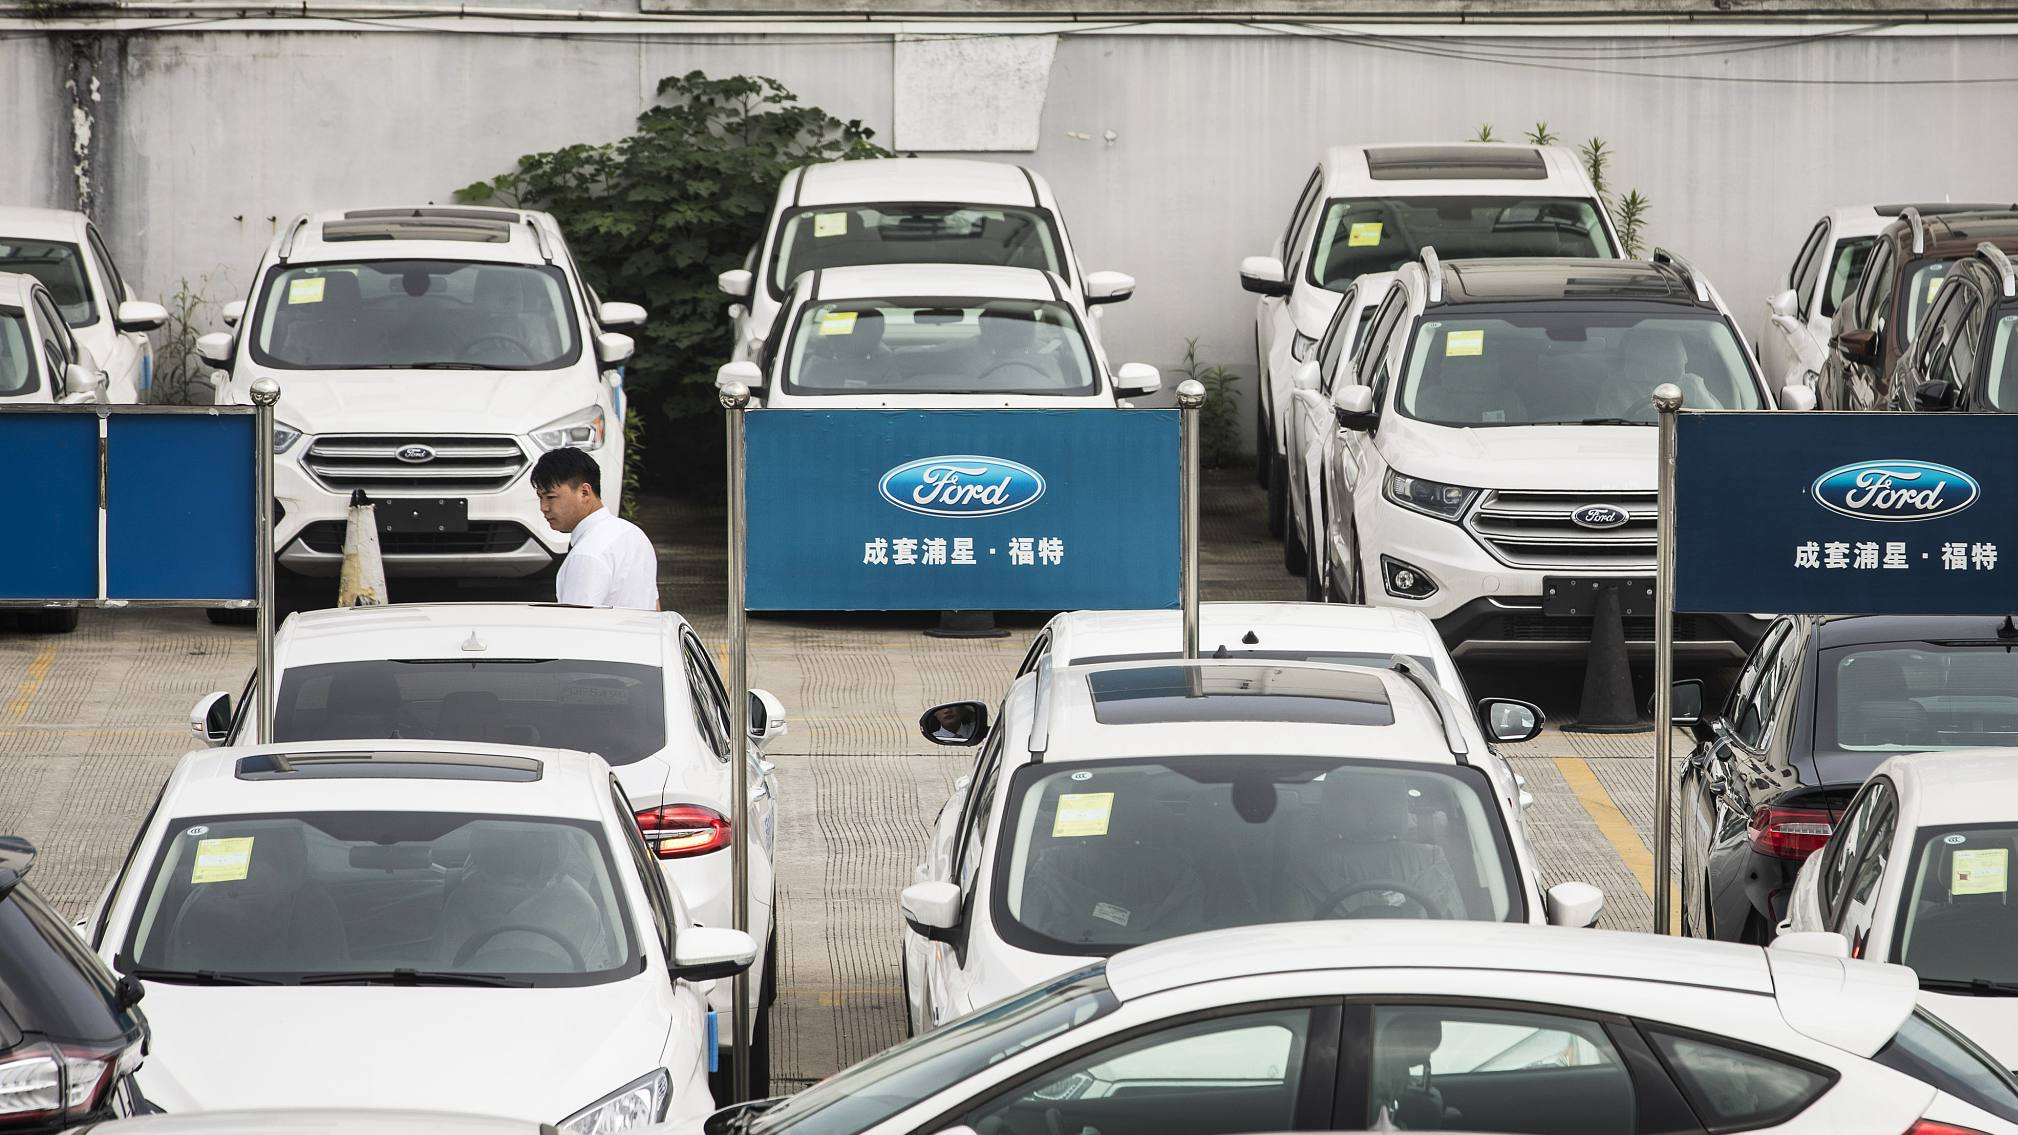 Ford Motor Co. vehicles on display at a car dealership in Shanghai, July 8, 2018.[Photo: IC]